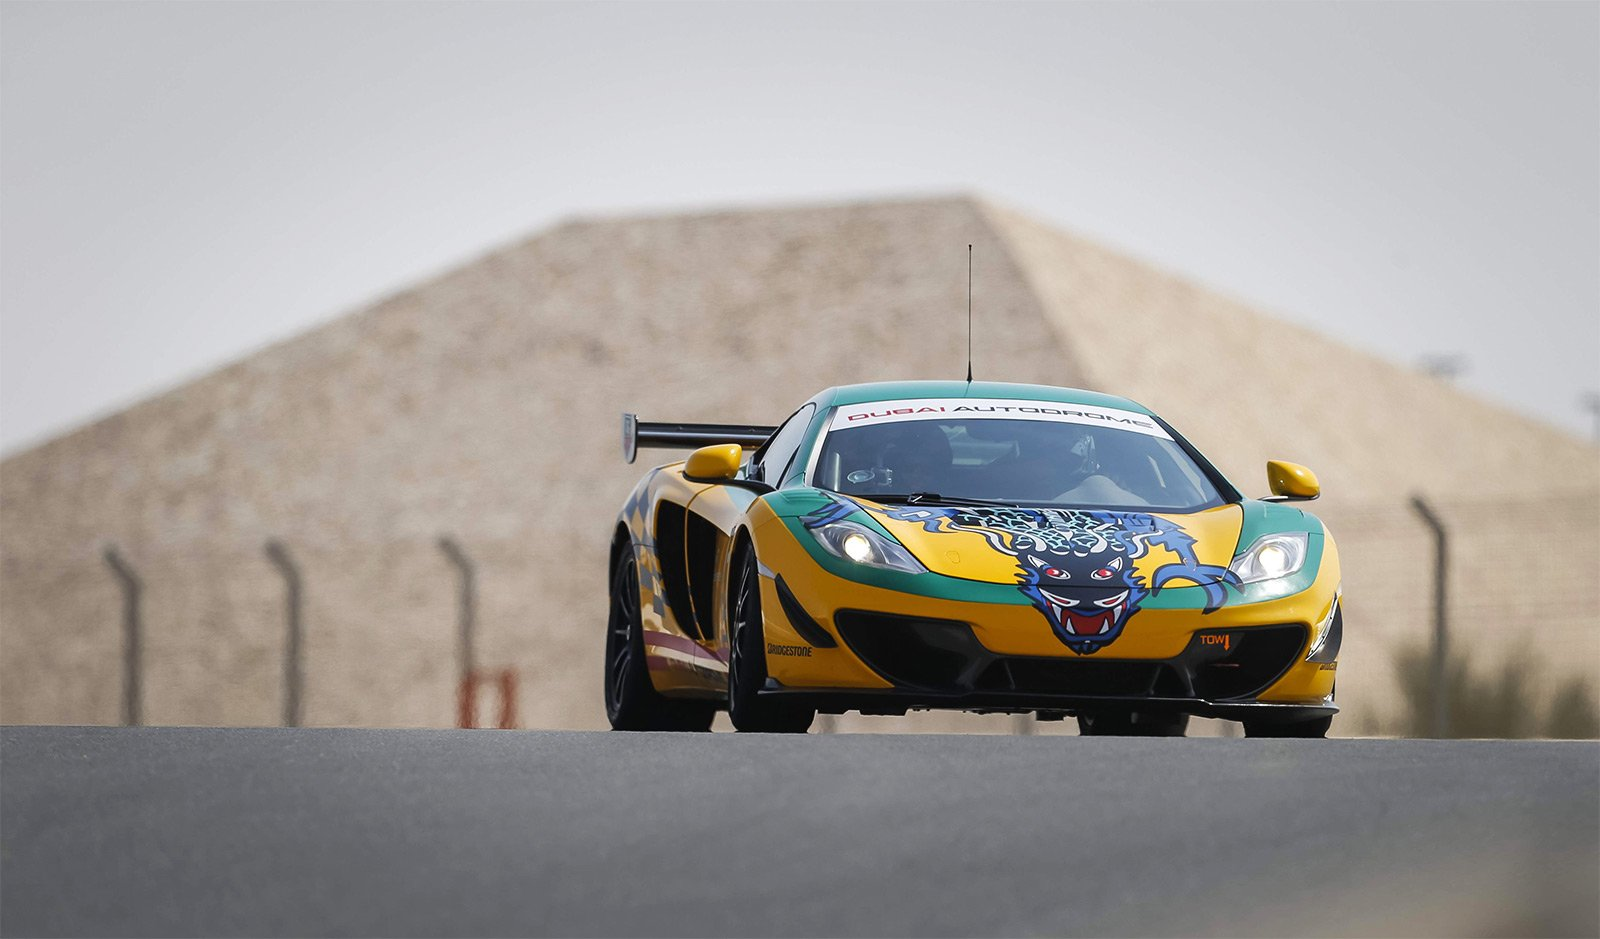 How to drive a thoroughbred McLaren Racing Machine in Dubai